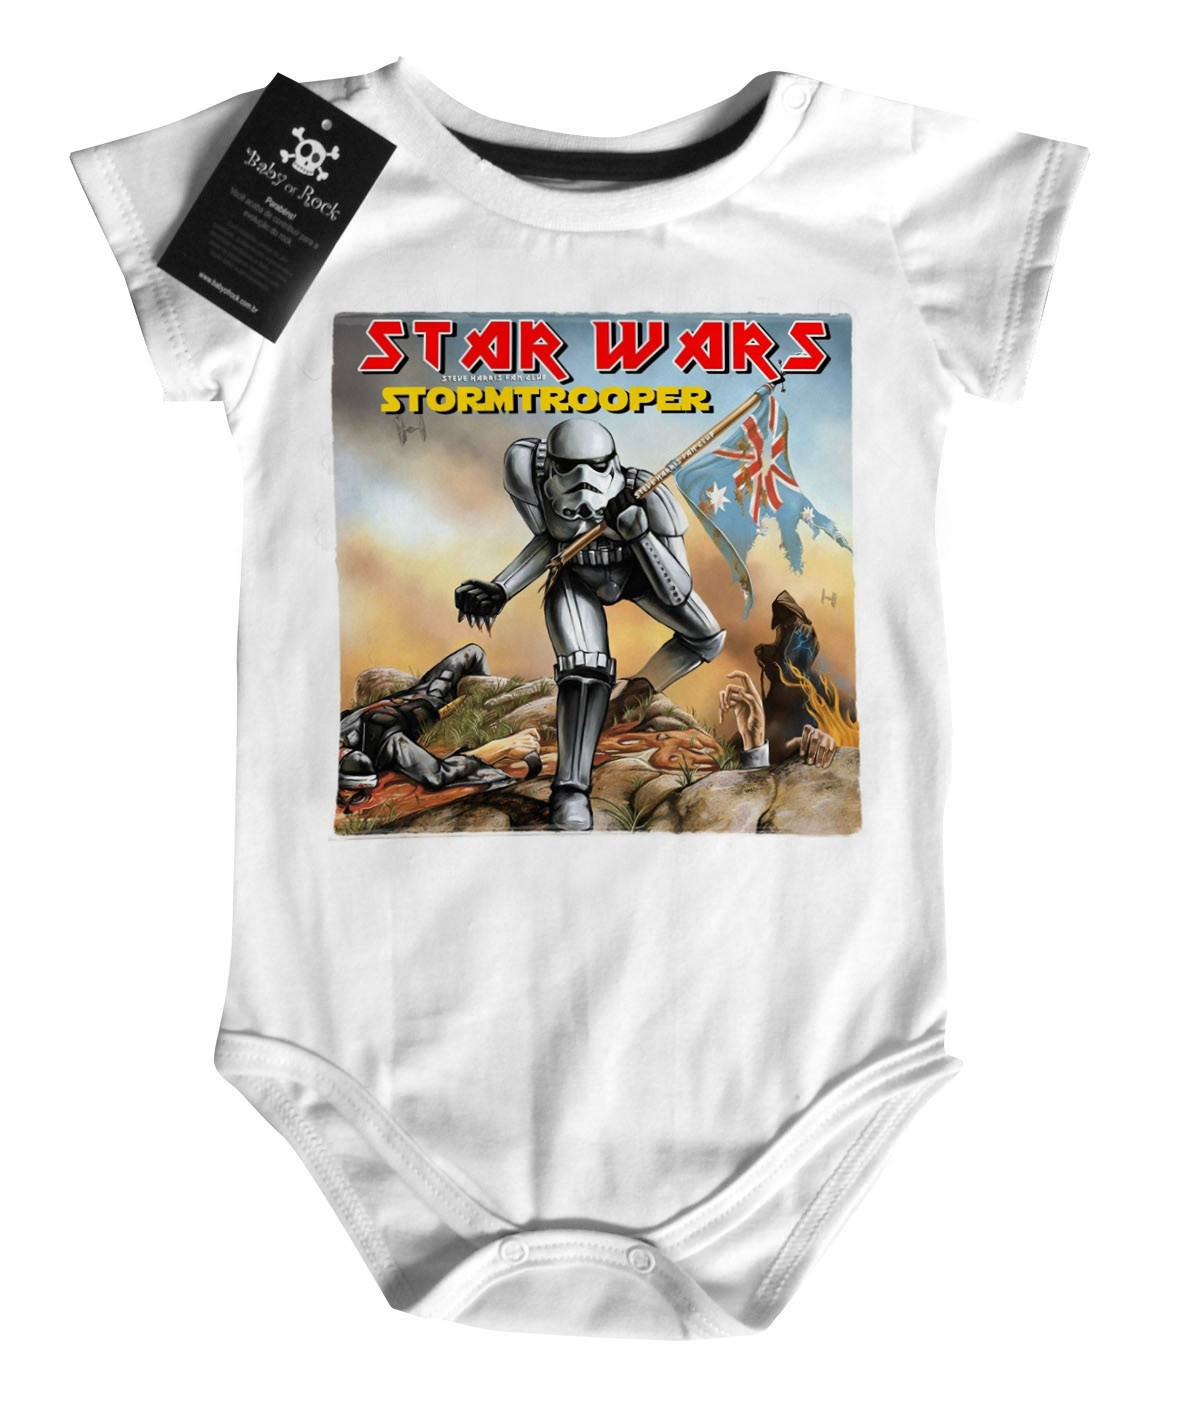 Body Bebê Star Wars / Iron Maiden - White  - Baby Monster S/A